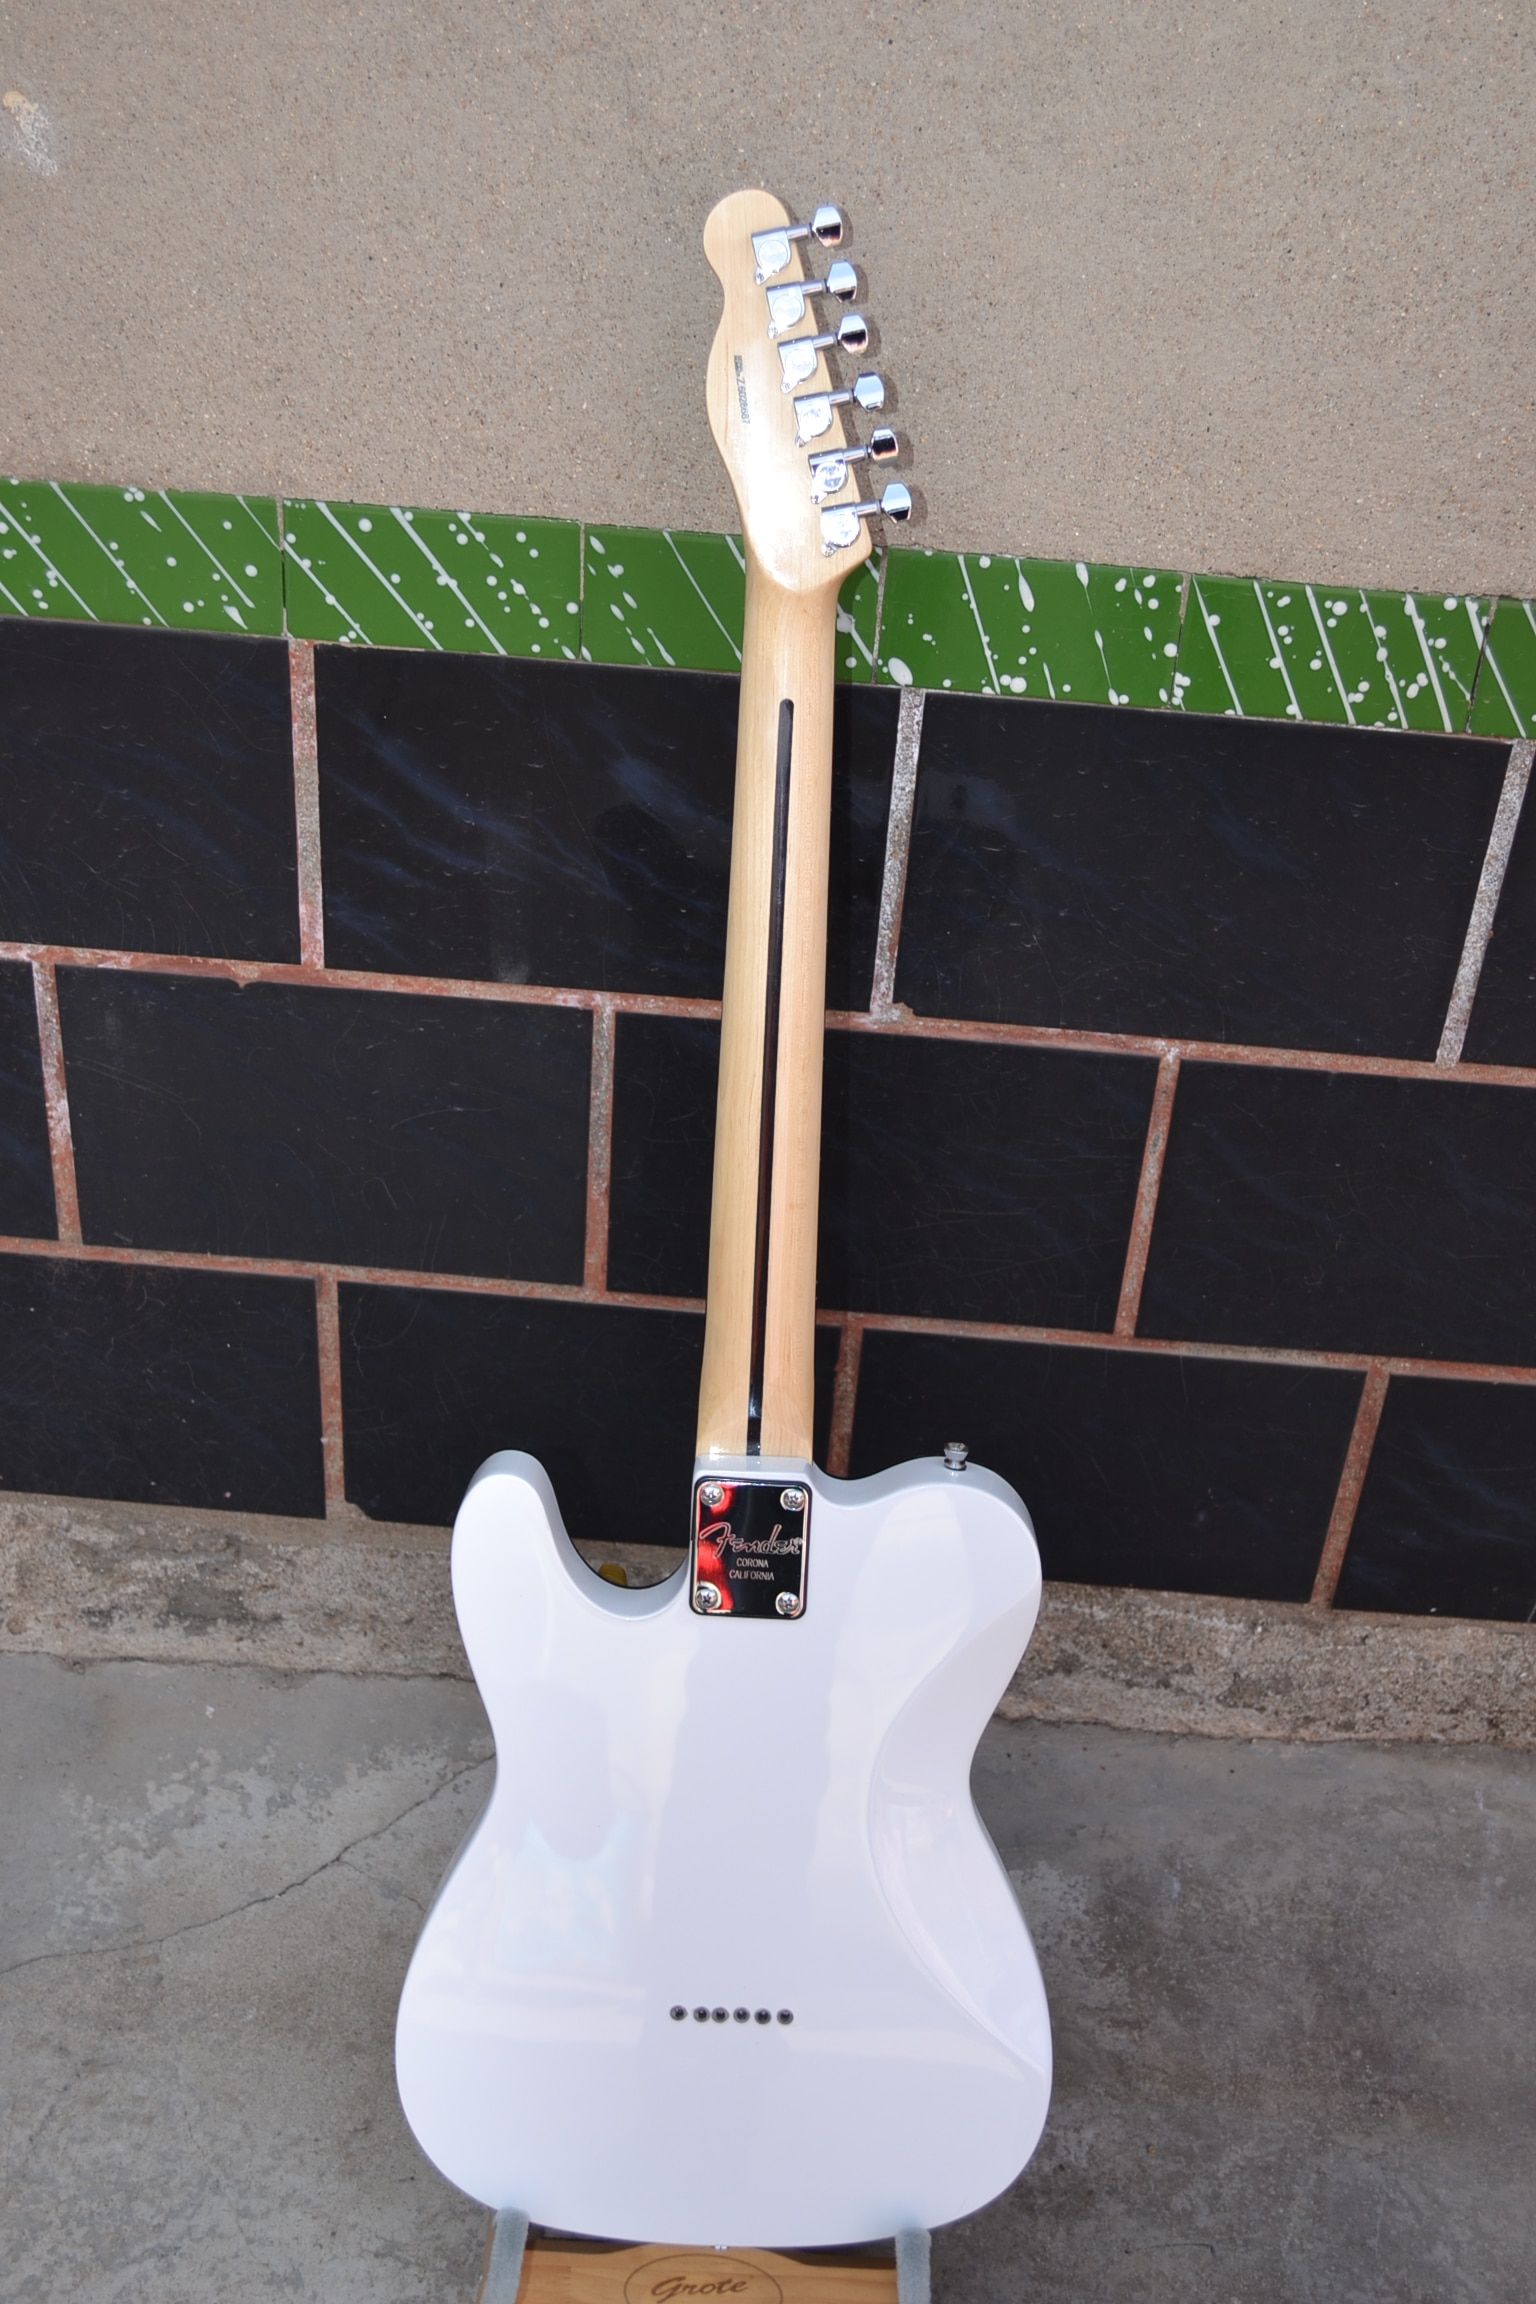 Factory wholesale classic 6 string electric guitar, pure white body, red armor panel, free delivery enlarge